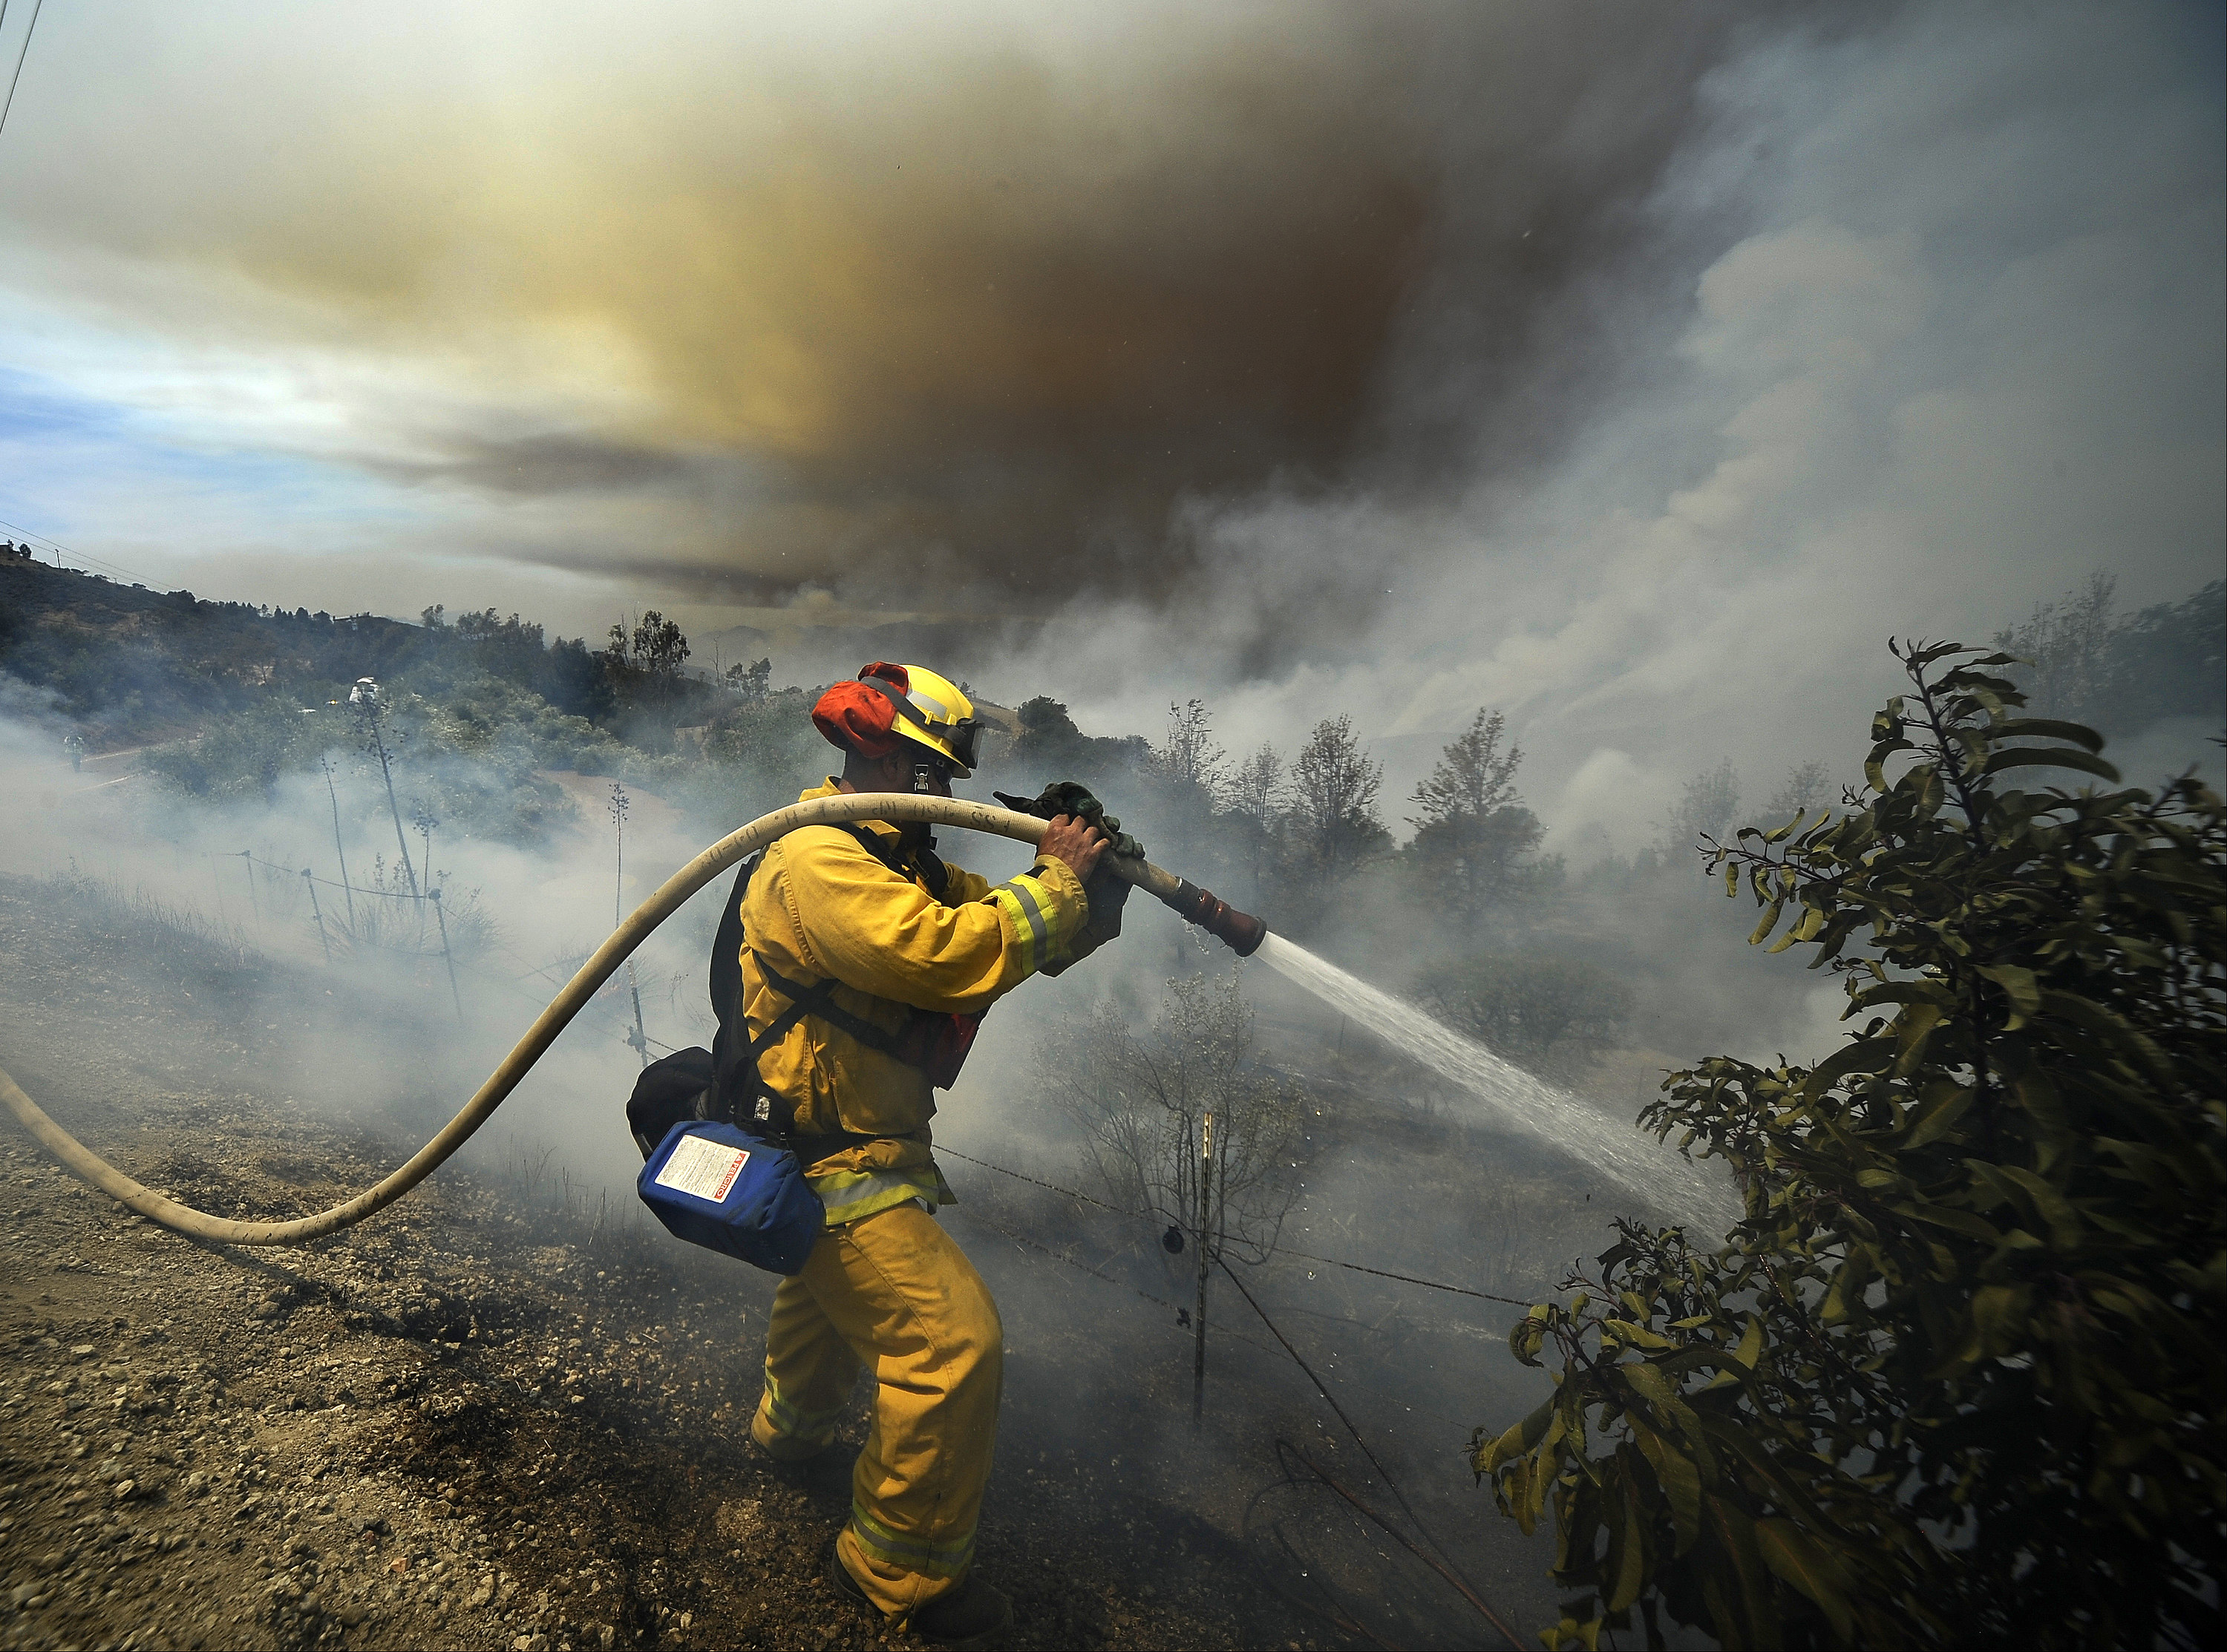 Firefighters battle fire during the second day of the Springs Fire in the mountain areas of Ventura County, California May 3, 2013. A fierce, wind-whipped wildfire spread on Friday along the California coast northwest of Los Angeles, threatening several thousand homes and a military base as more than 1,100 dwellings were ordered evacuated and a university campus was closed.